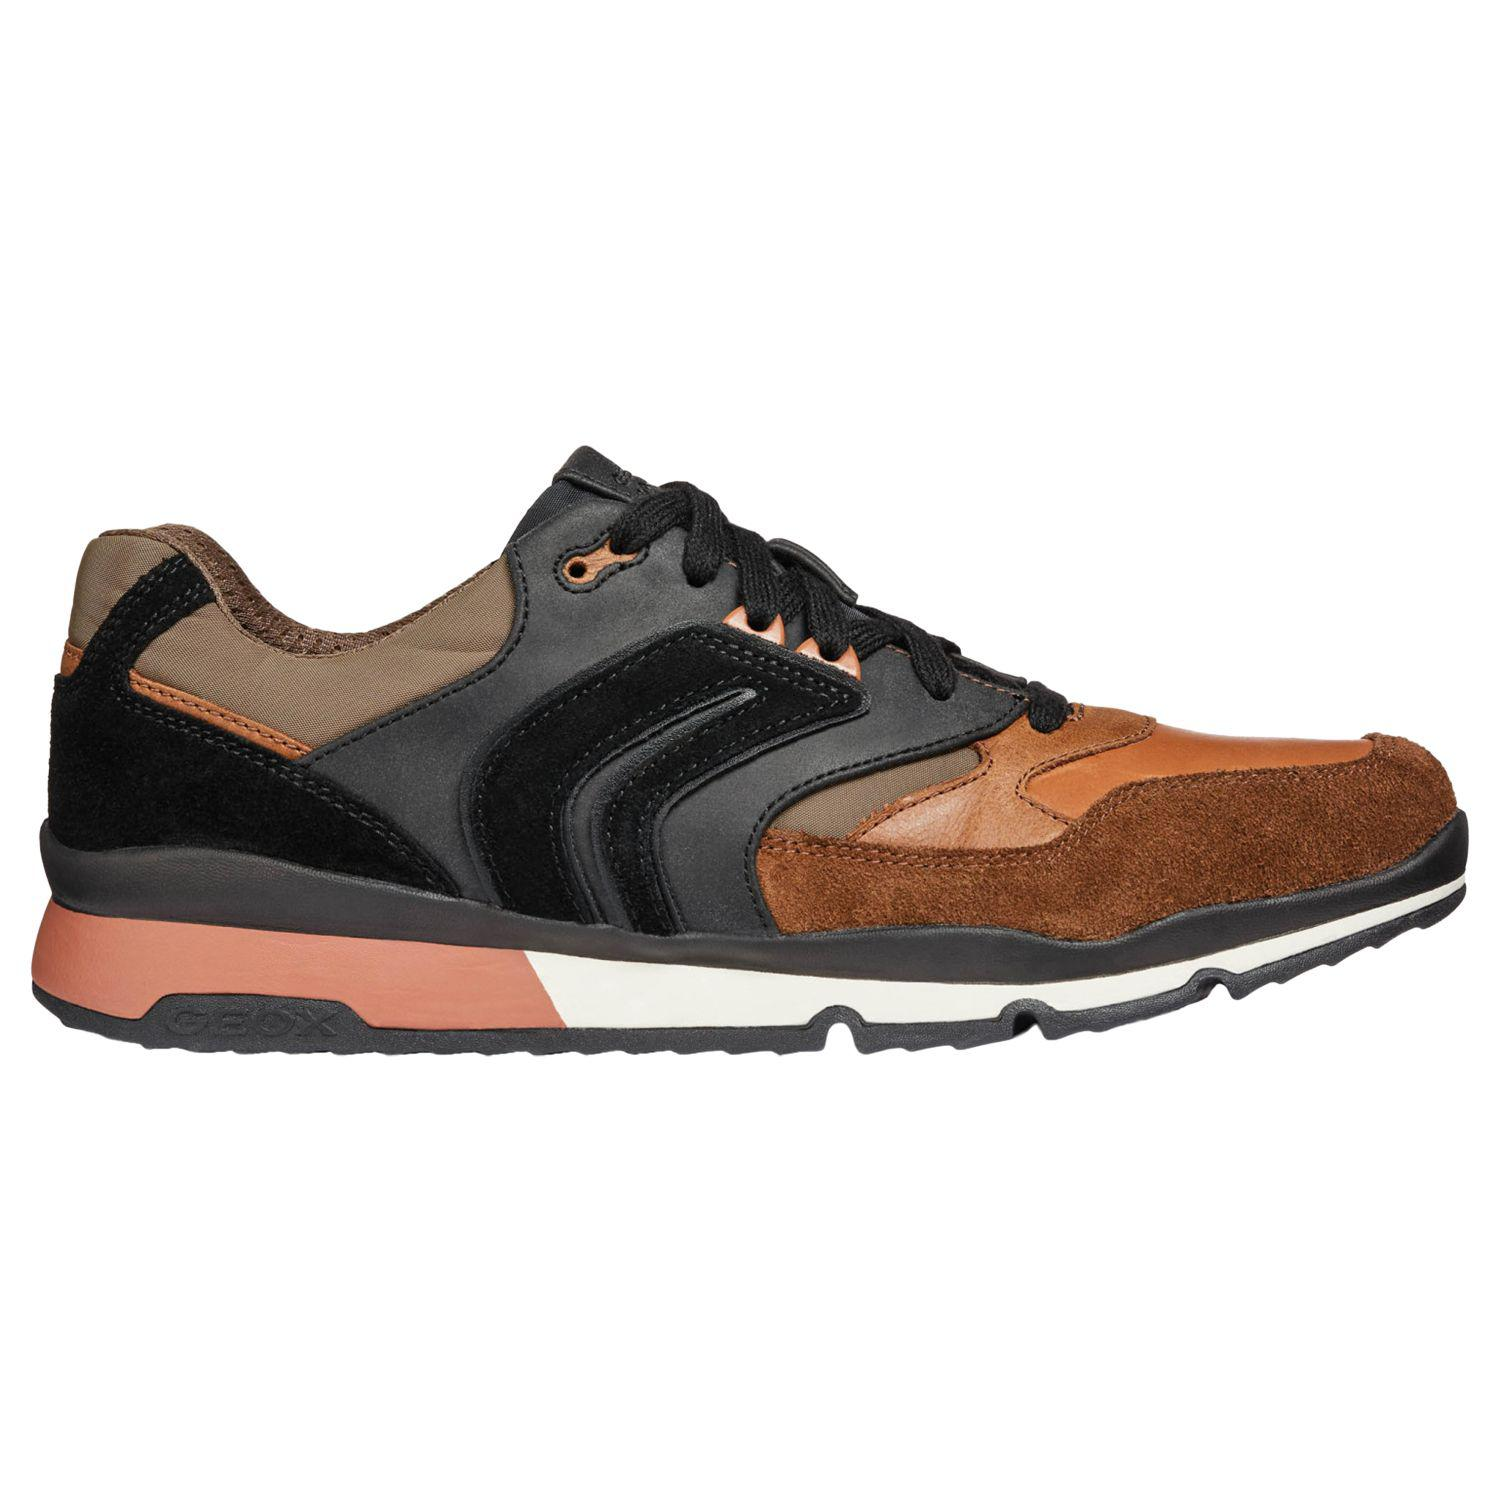 cb7902a0953 Geox. Men's Orange Sandford Trainers. £110 £77 From John Lewis and Partners